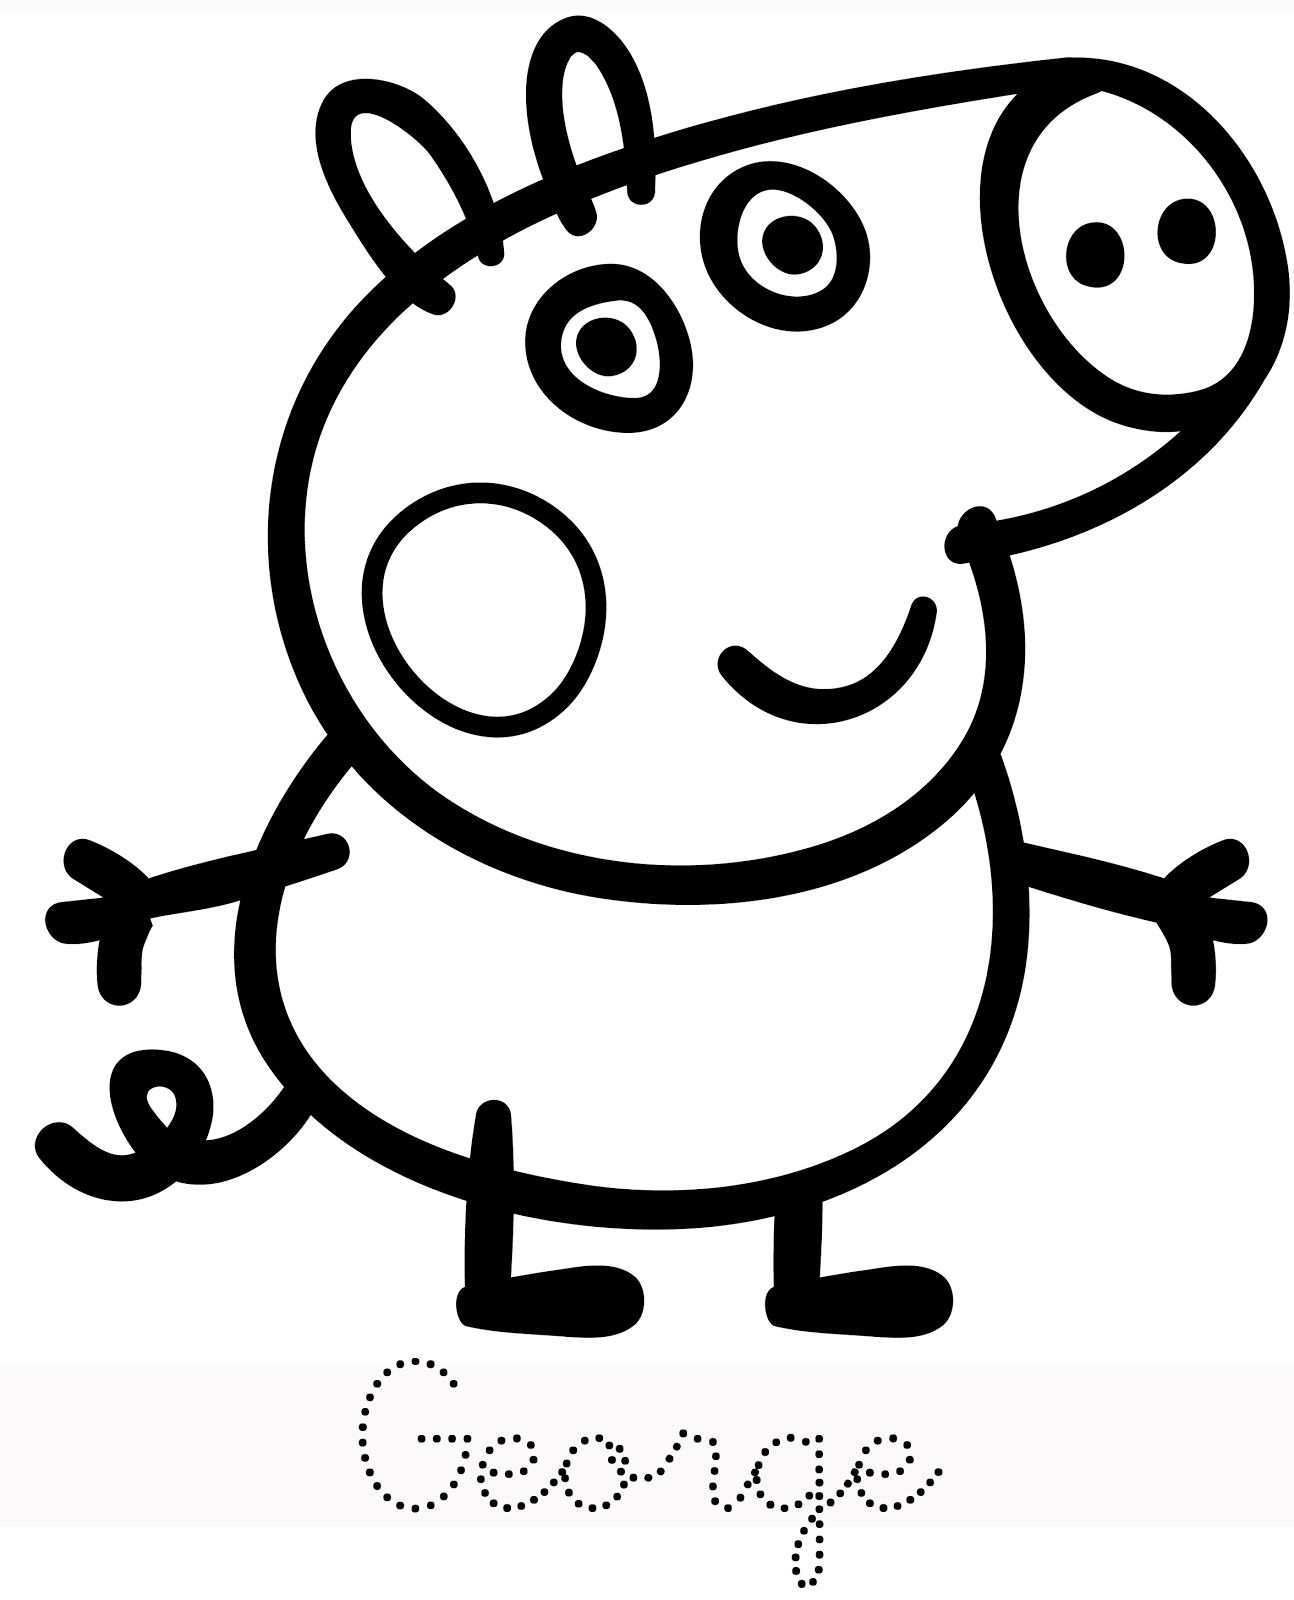 George Trace Peppa Pig Coloring Pages Peppa Pig Colouring Peppa Pig Drawing